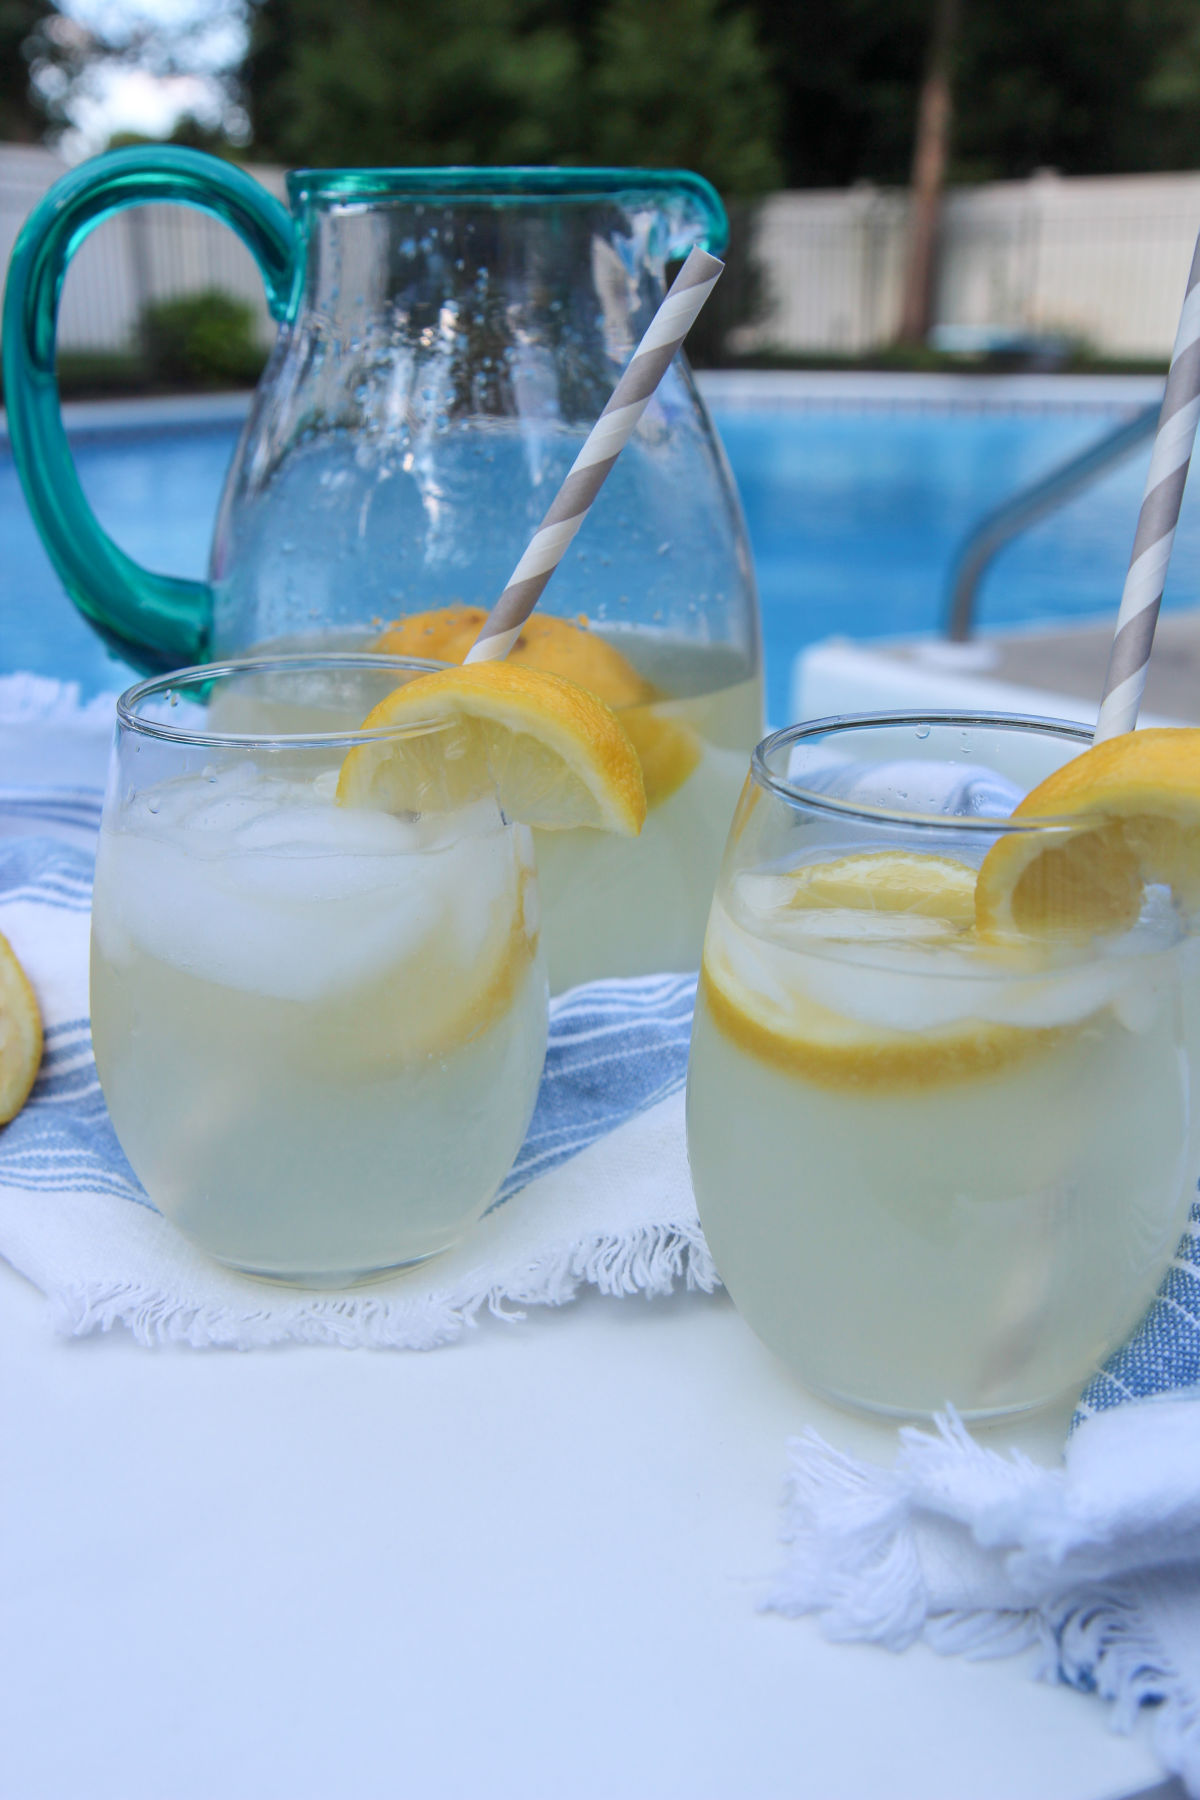 two glasses of lemonade and a glass pitcher in the background